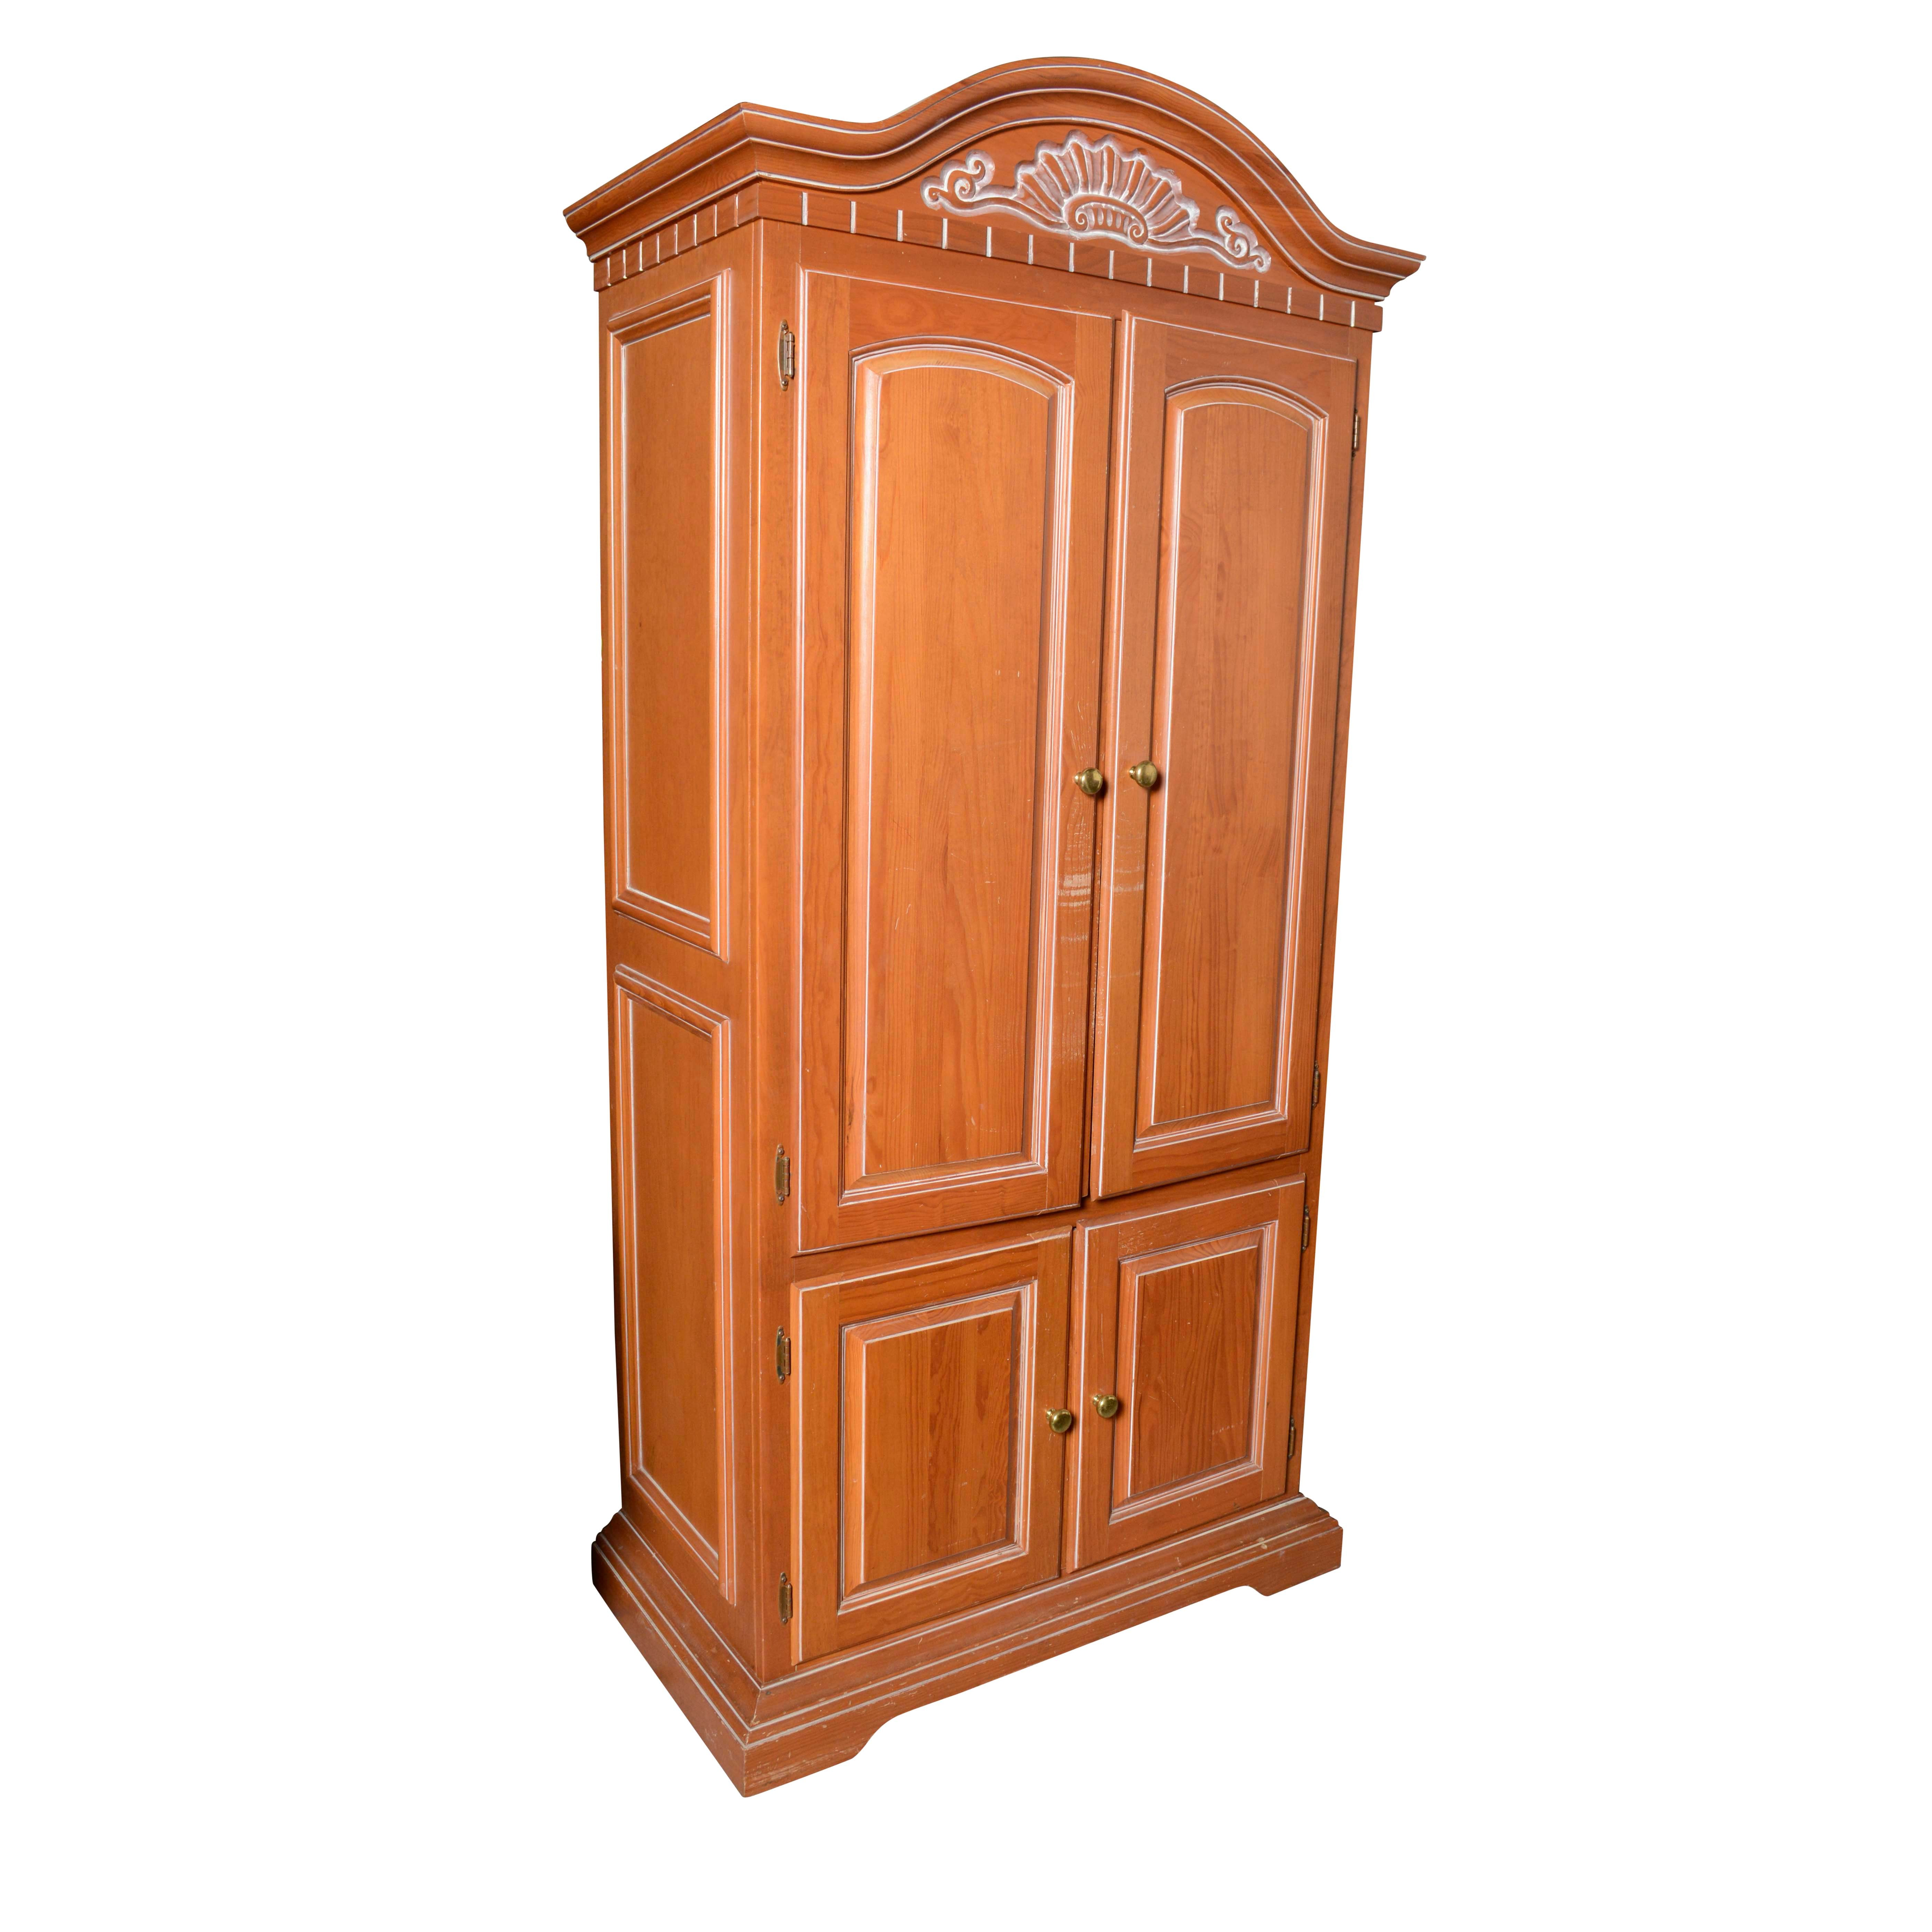 Contemporary Country French Style Wardrobe